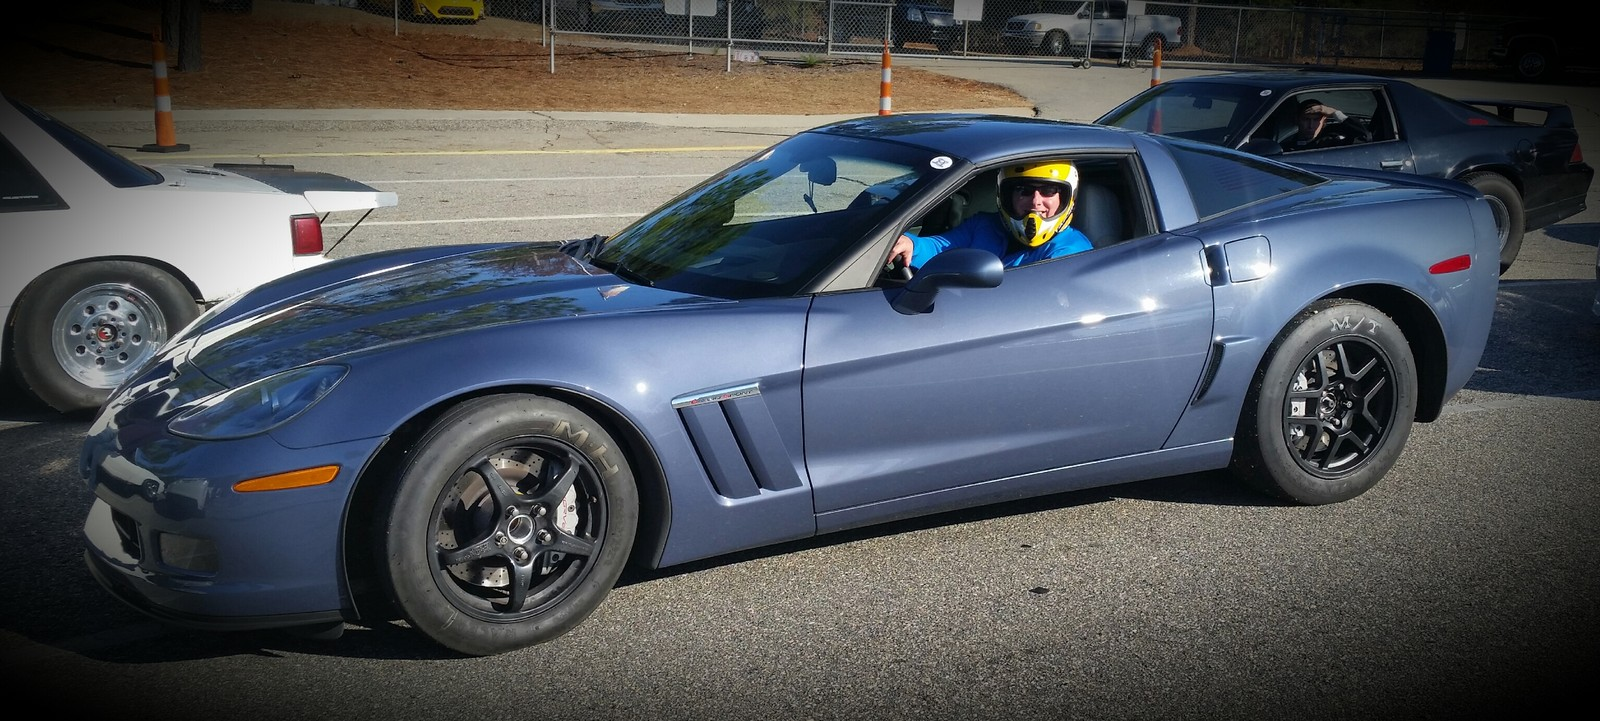 sonic Blue  2012 Chevrolet Corvette Grand Sport  Bolt-ons